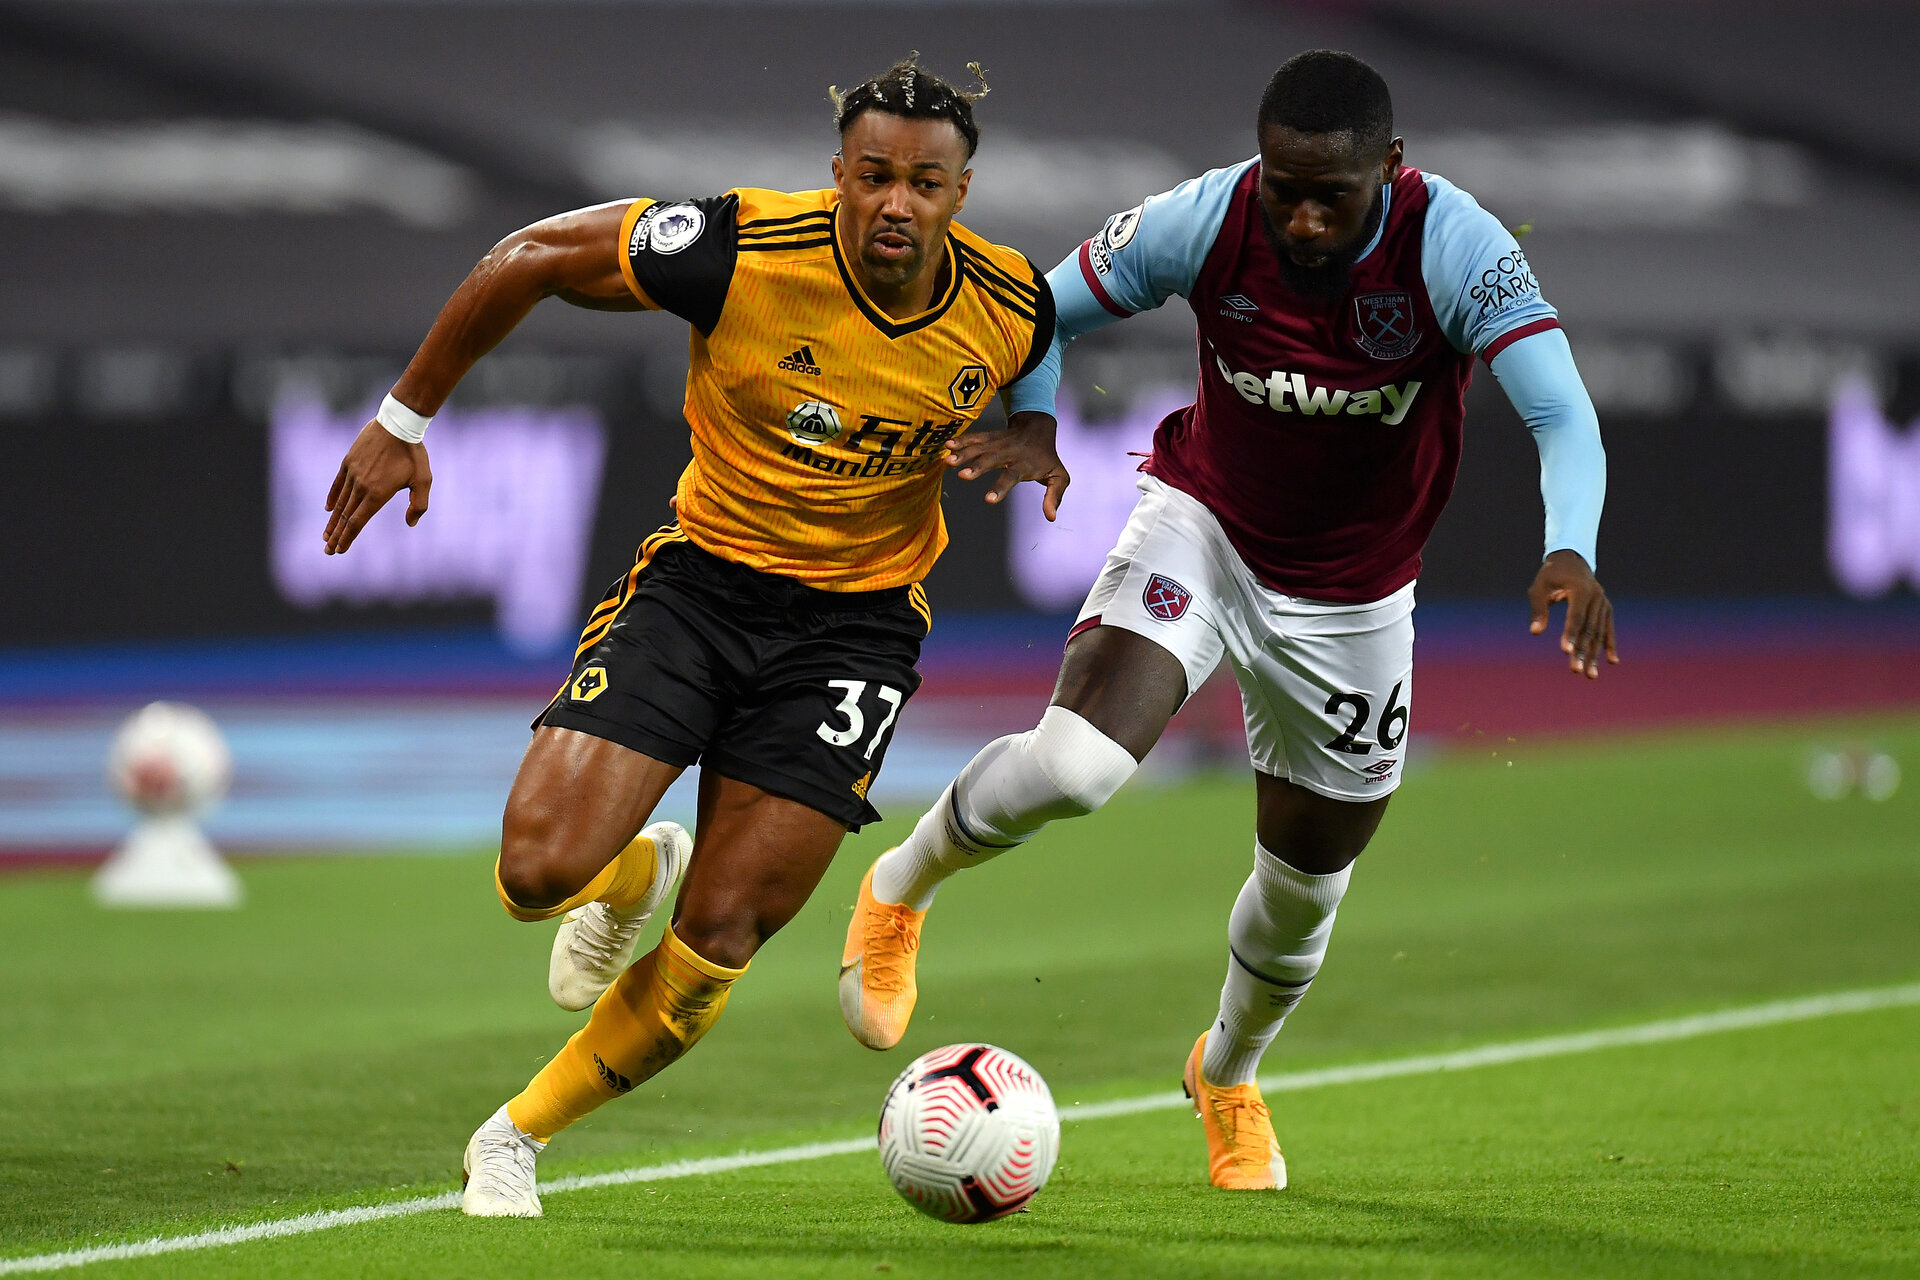 LONDON, ENGLAND - SEPTEMBER 27: Adama Traore of Wolverhampton Wanderers takes on Arthur Masuaku of West Ham United during the Premier League match between West Ham United and Wolverhampton Wanderers at London Stadium on September 27, 2020 in London, England. Sporting stadiums around the UK remain under strict restrictions due to the Coronavirus Pandemic as Government social distancing laws prohibit fans inside venues resulting in games being played behind closed doors. (Photo by Justin Setterfield/Getty Images )